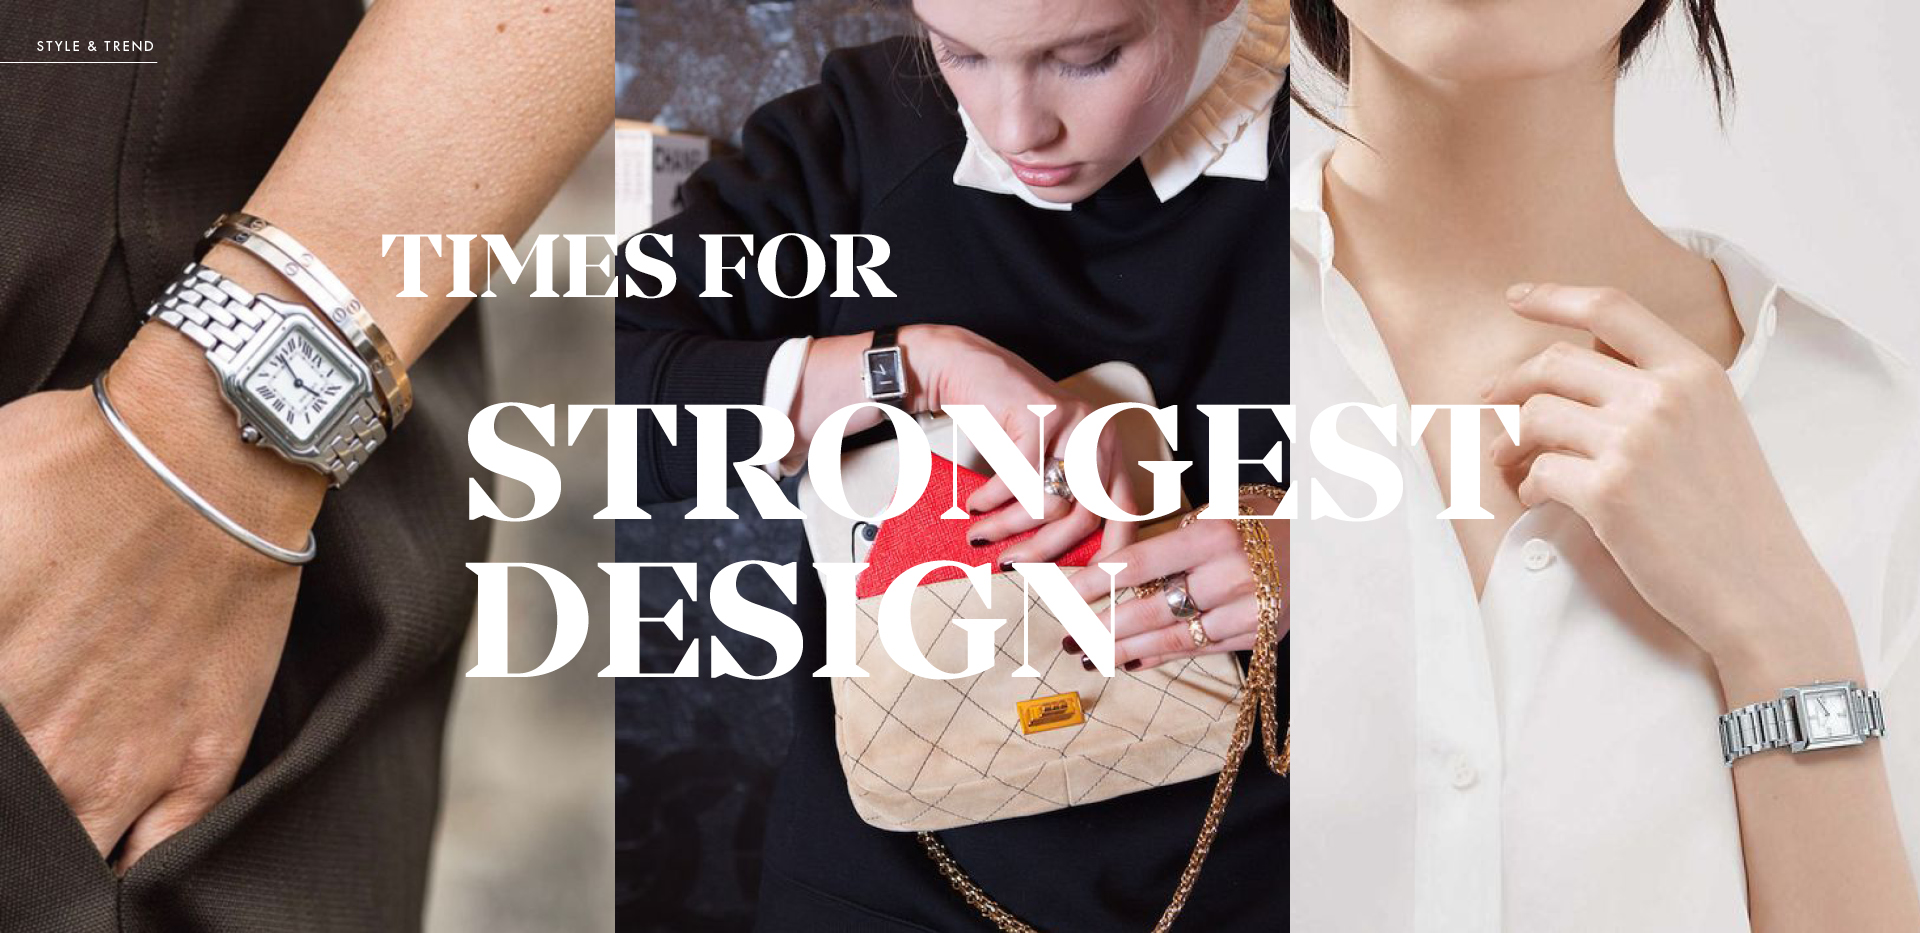 TIMES FOR STRONGEST DESIGN